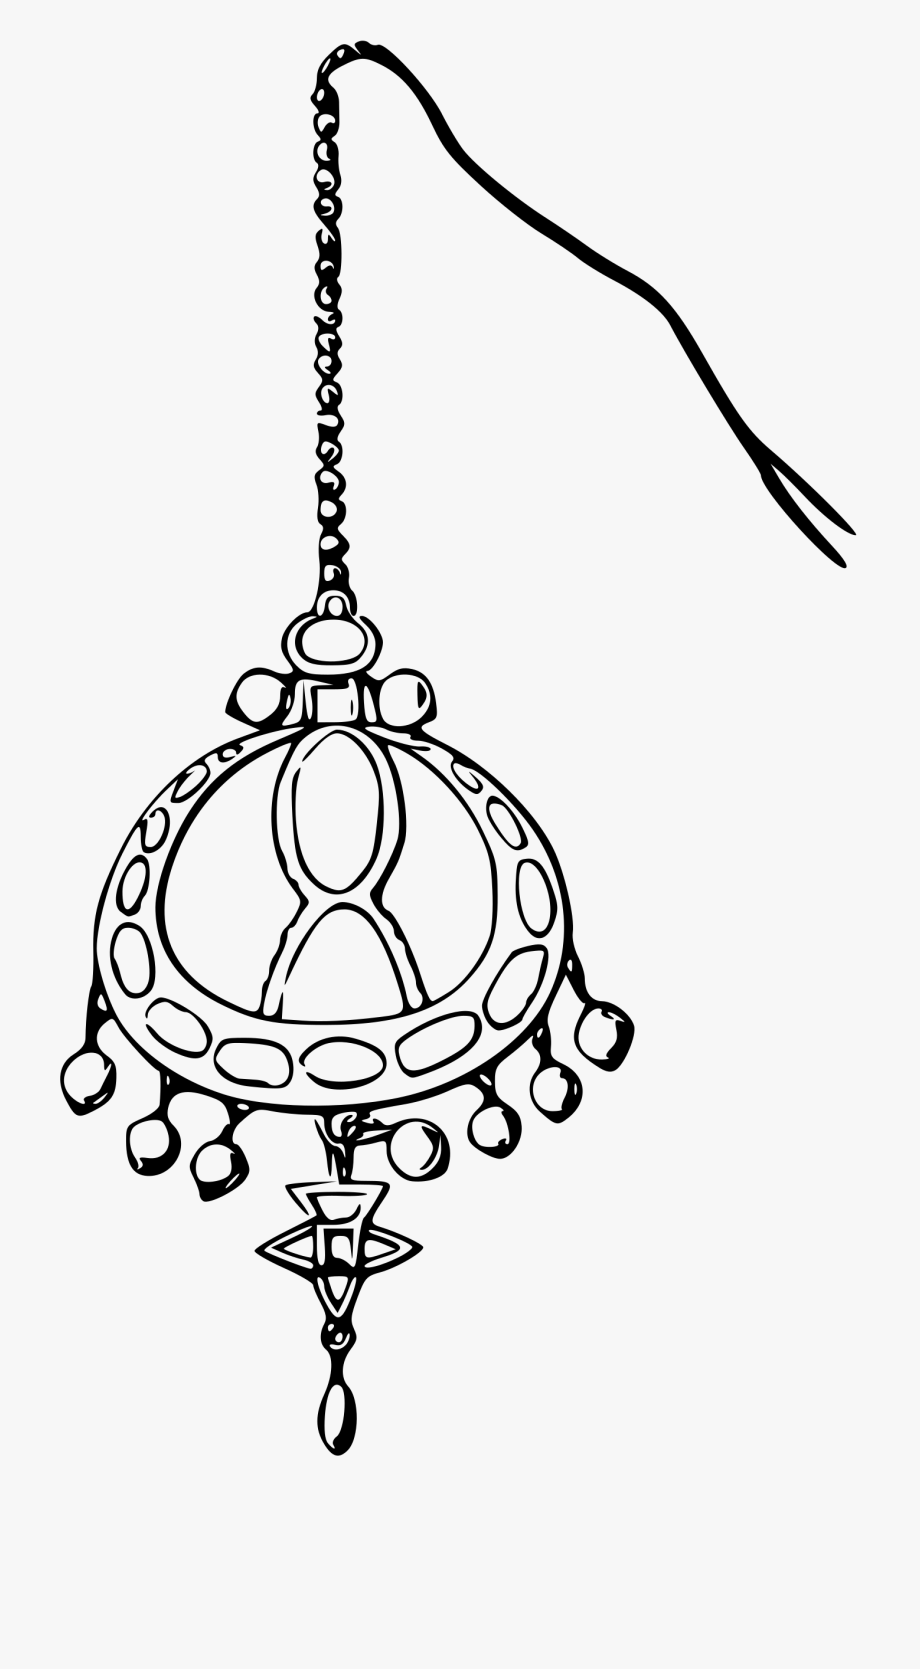 Download for free 10 PNG Clipart jewellers jewelers Images.